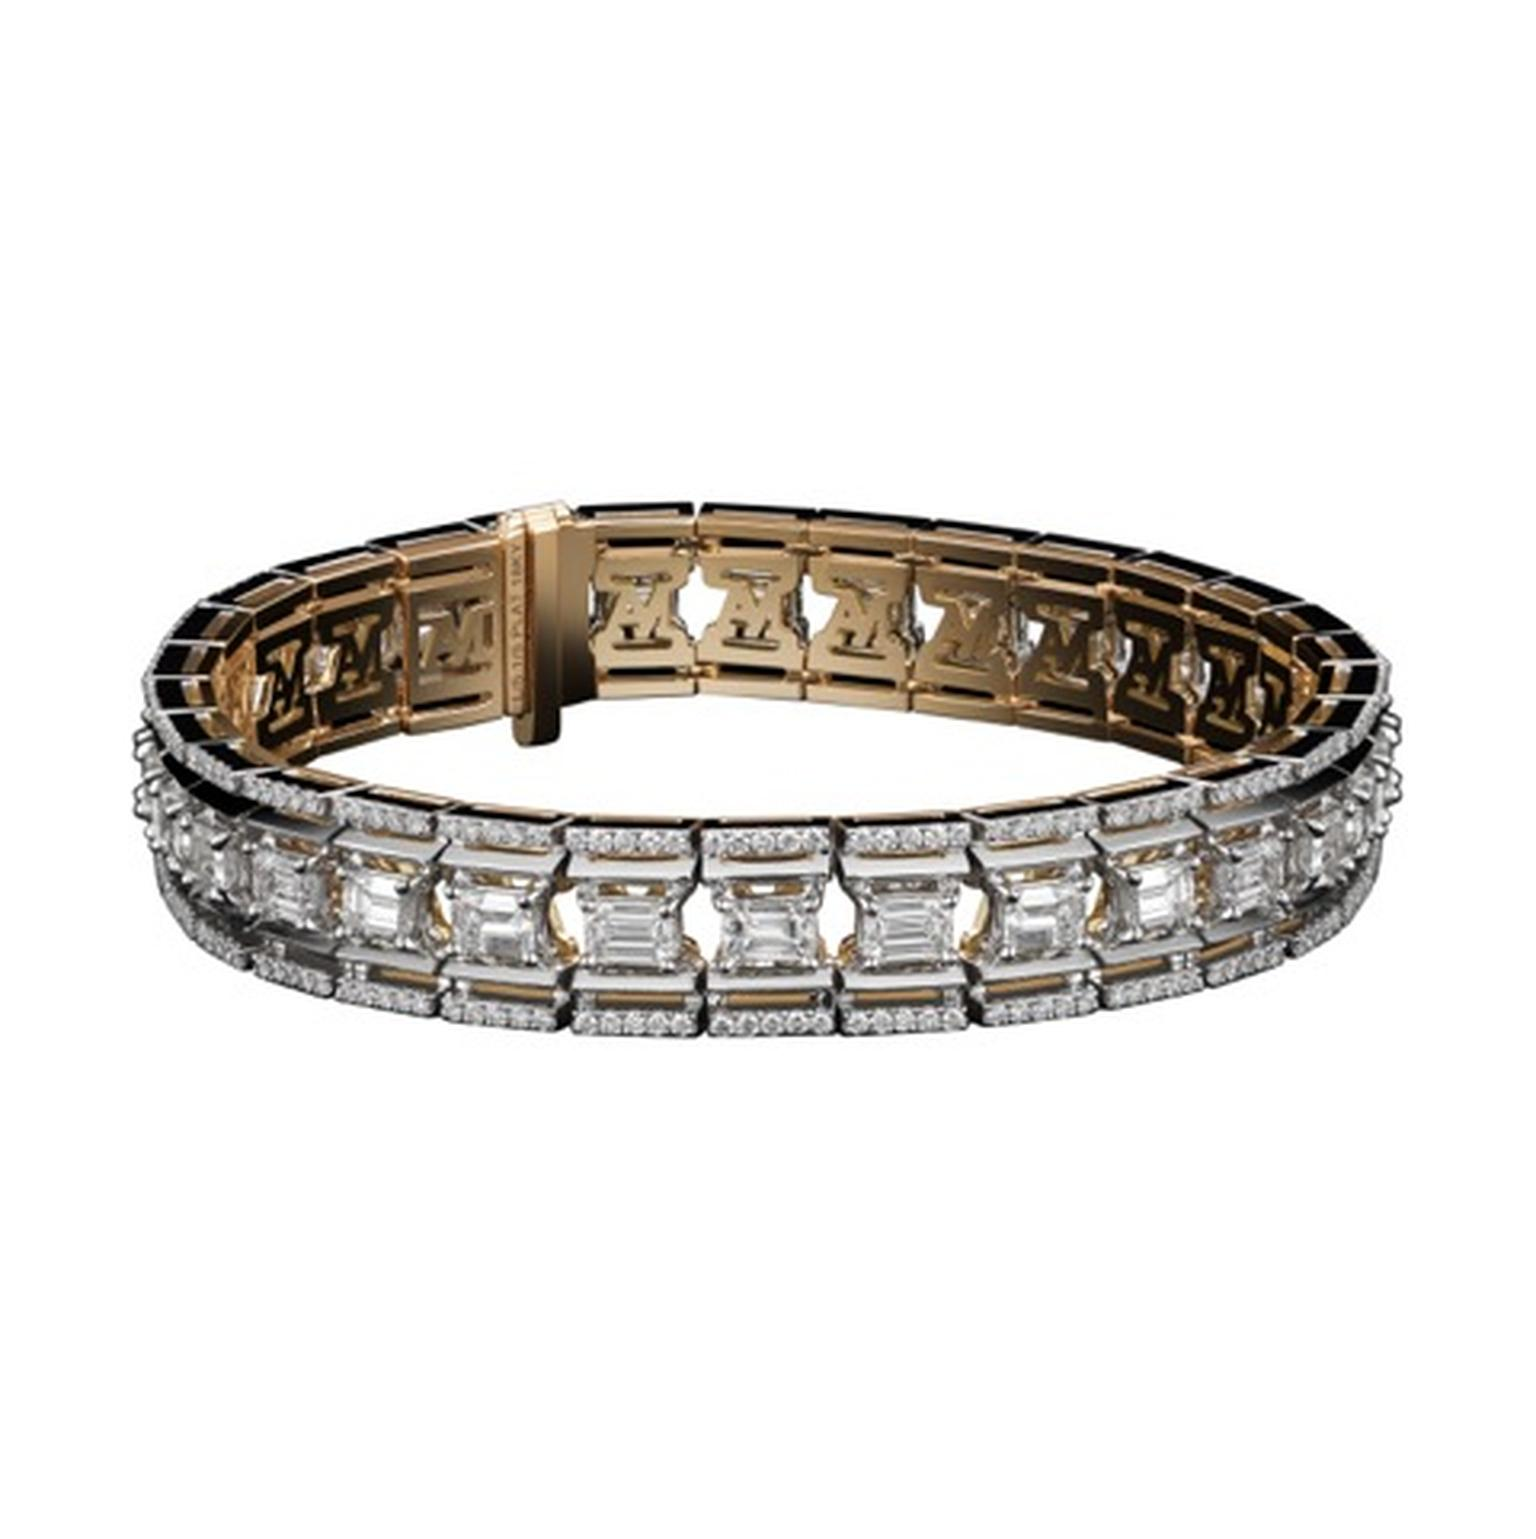 Alexandra Mor_Emerald Cut Platform Diamond Bracelet HighRez White BG Full view (AMBRC6005-01_E).jpg